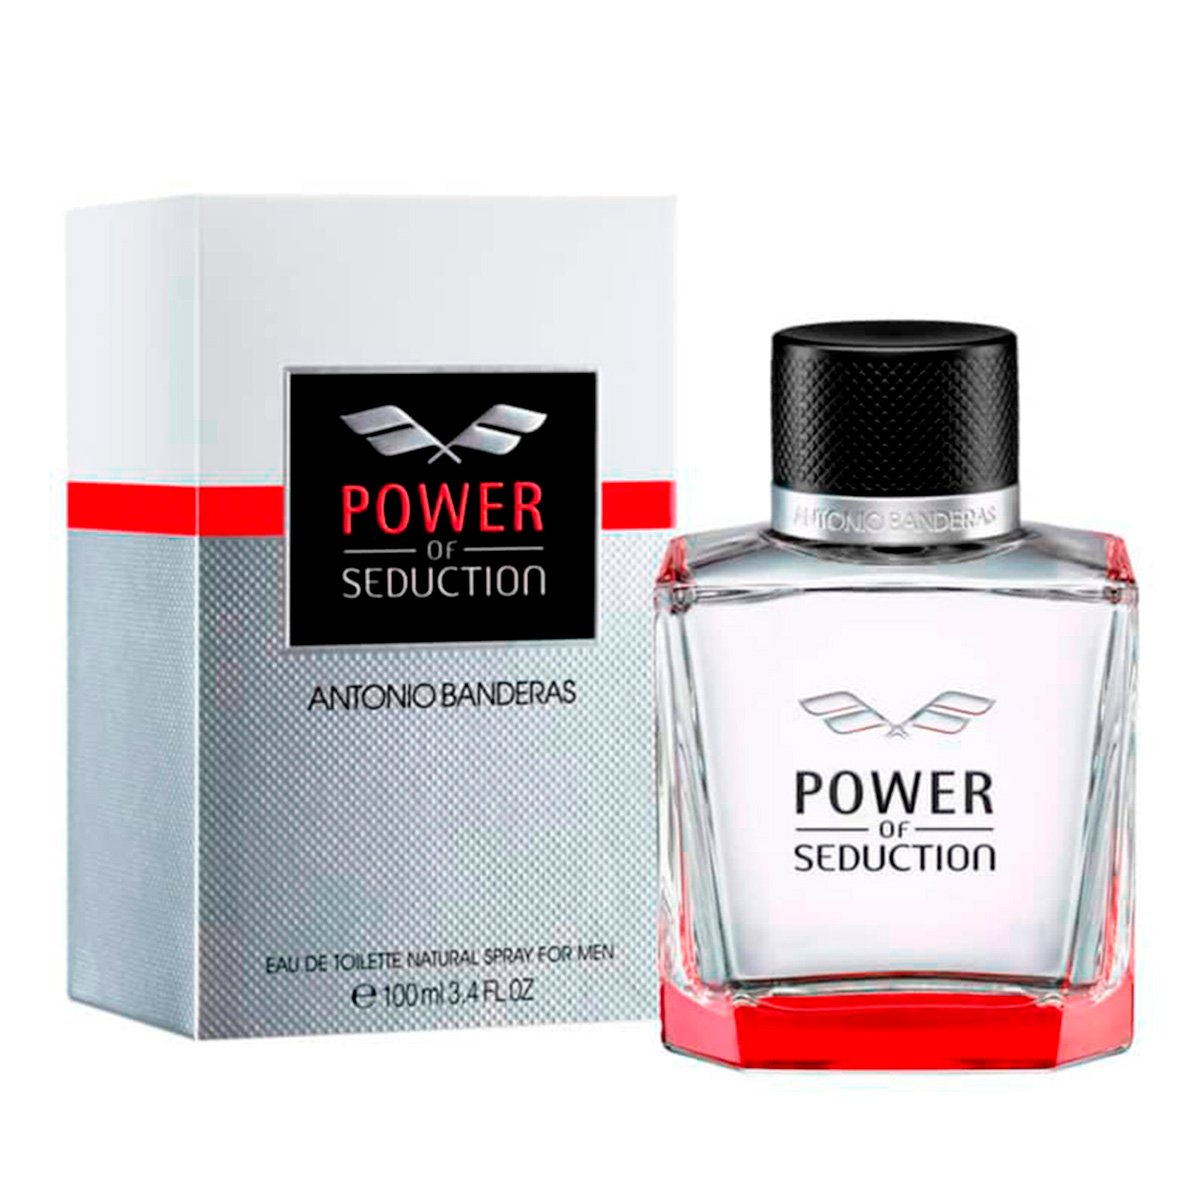 Perfume Masculino Power Of Seduction Antonio Banderas Eau de Toilette 100ml